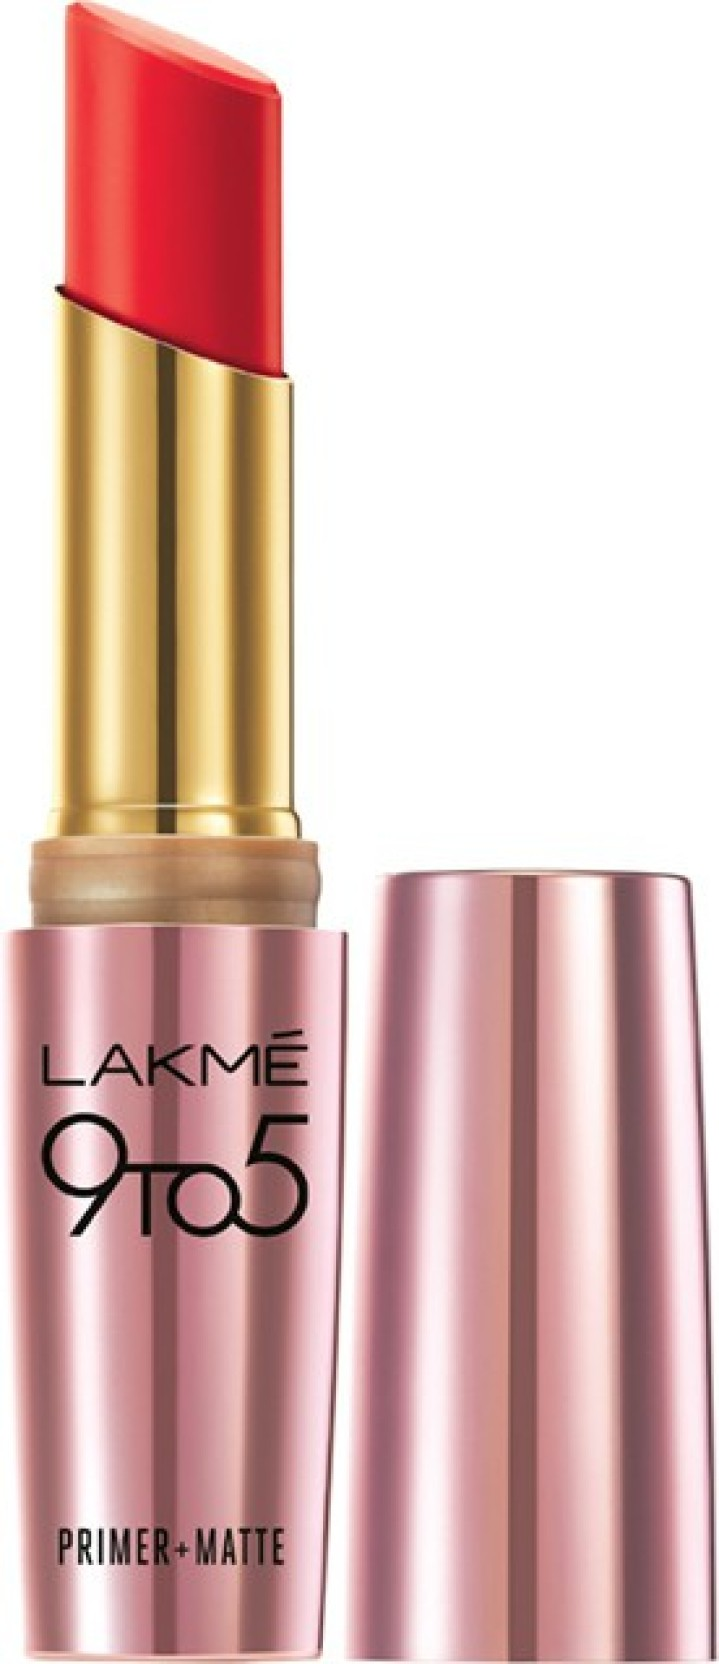 Lakme 9 to 5 Primer + Matte Lip Color - Price in India ...Lakme Lipstick Shade Card With Shade Number With Price